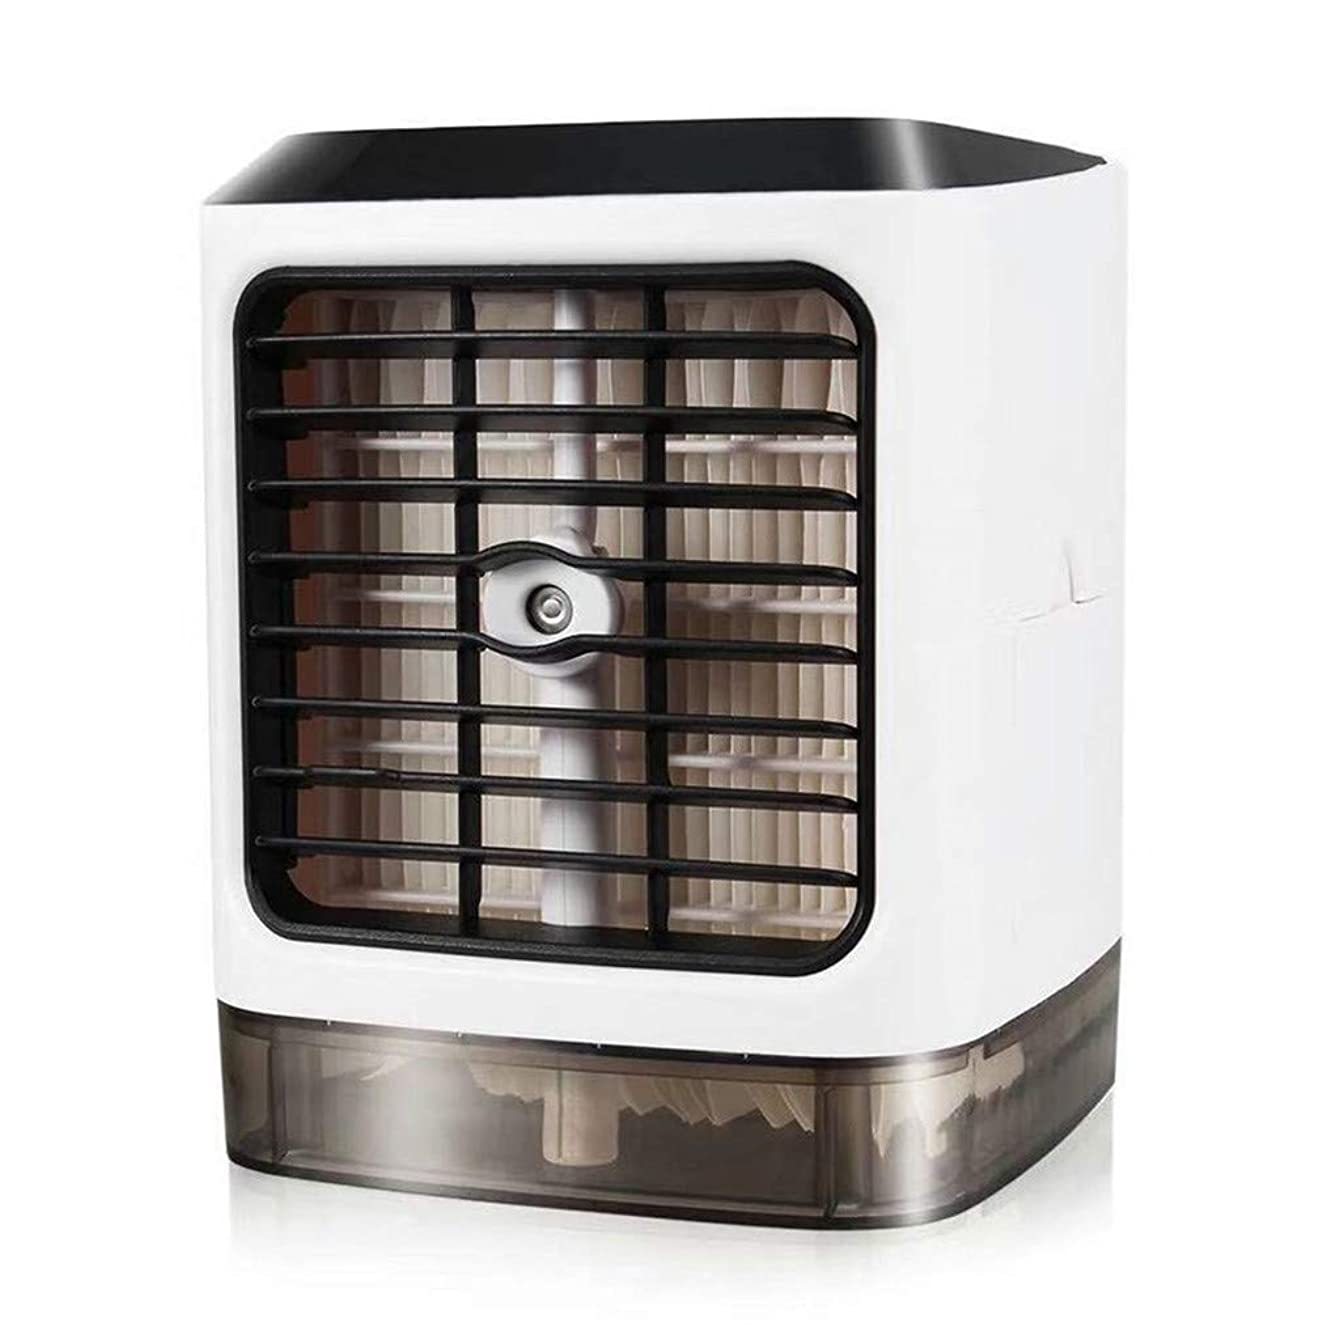 Iuhan Remote Control Personal Air Conditioner Fan, Air Led Night Light Space Cooler Desktop Fan Quiet Personal Table Fan Mini Evaporative Air Circulator Cooler Humidifier Quiet for Office, Dorm, Room